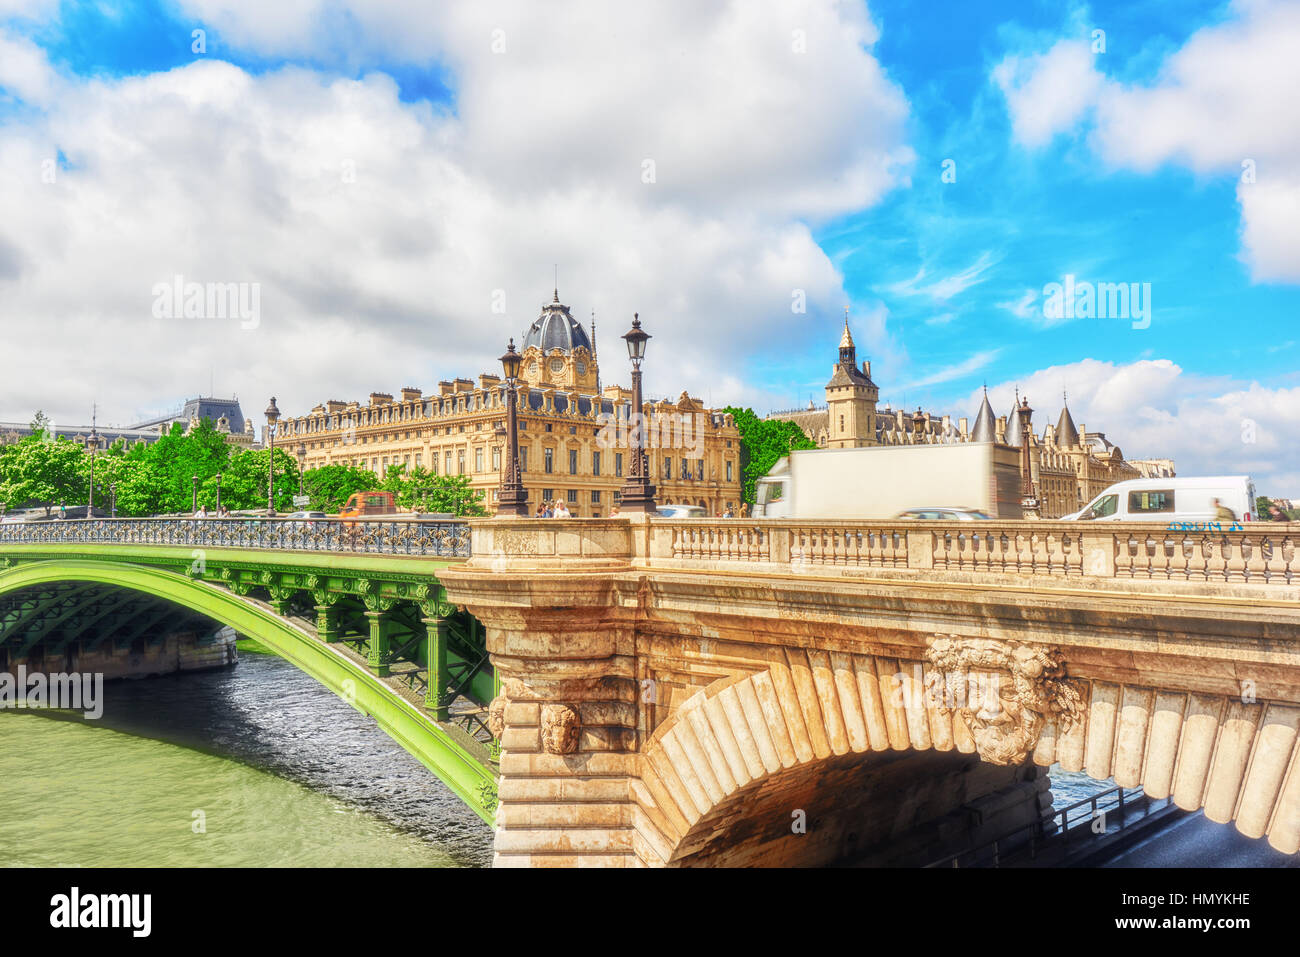 PARIS, FRANCE - JULY 04, 2016 : IRiver Seine, Registry of the Paris Commercial Court and Bridge of Changed in Paris. - Stock Image